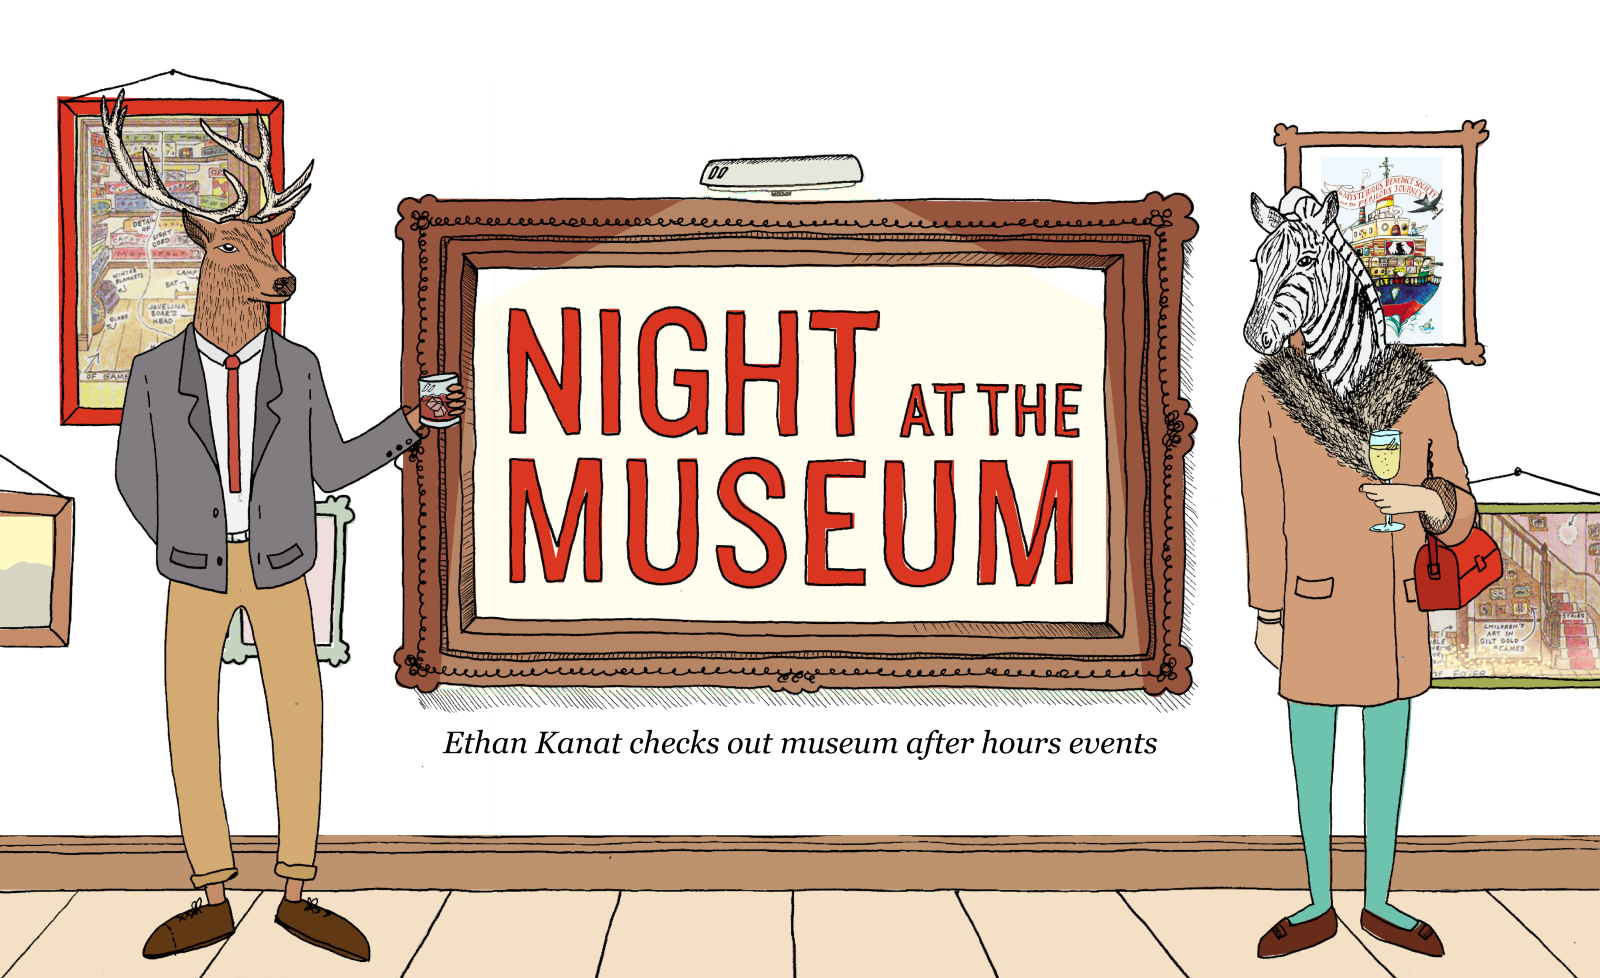 Advertising clipart convincing. Night at the museum